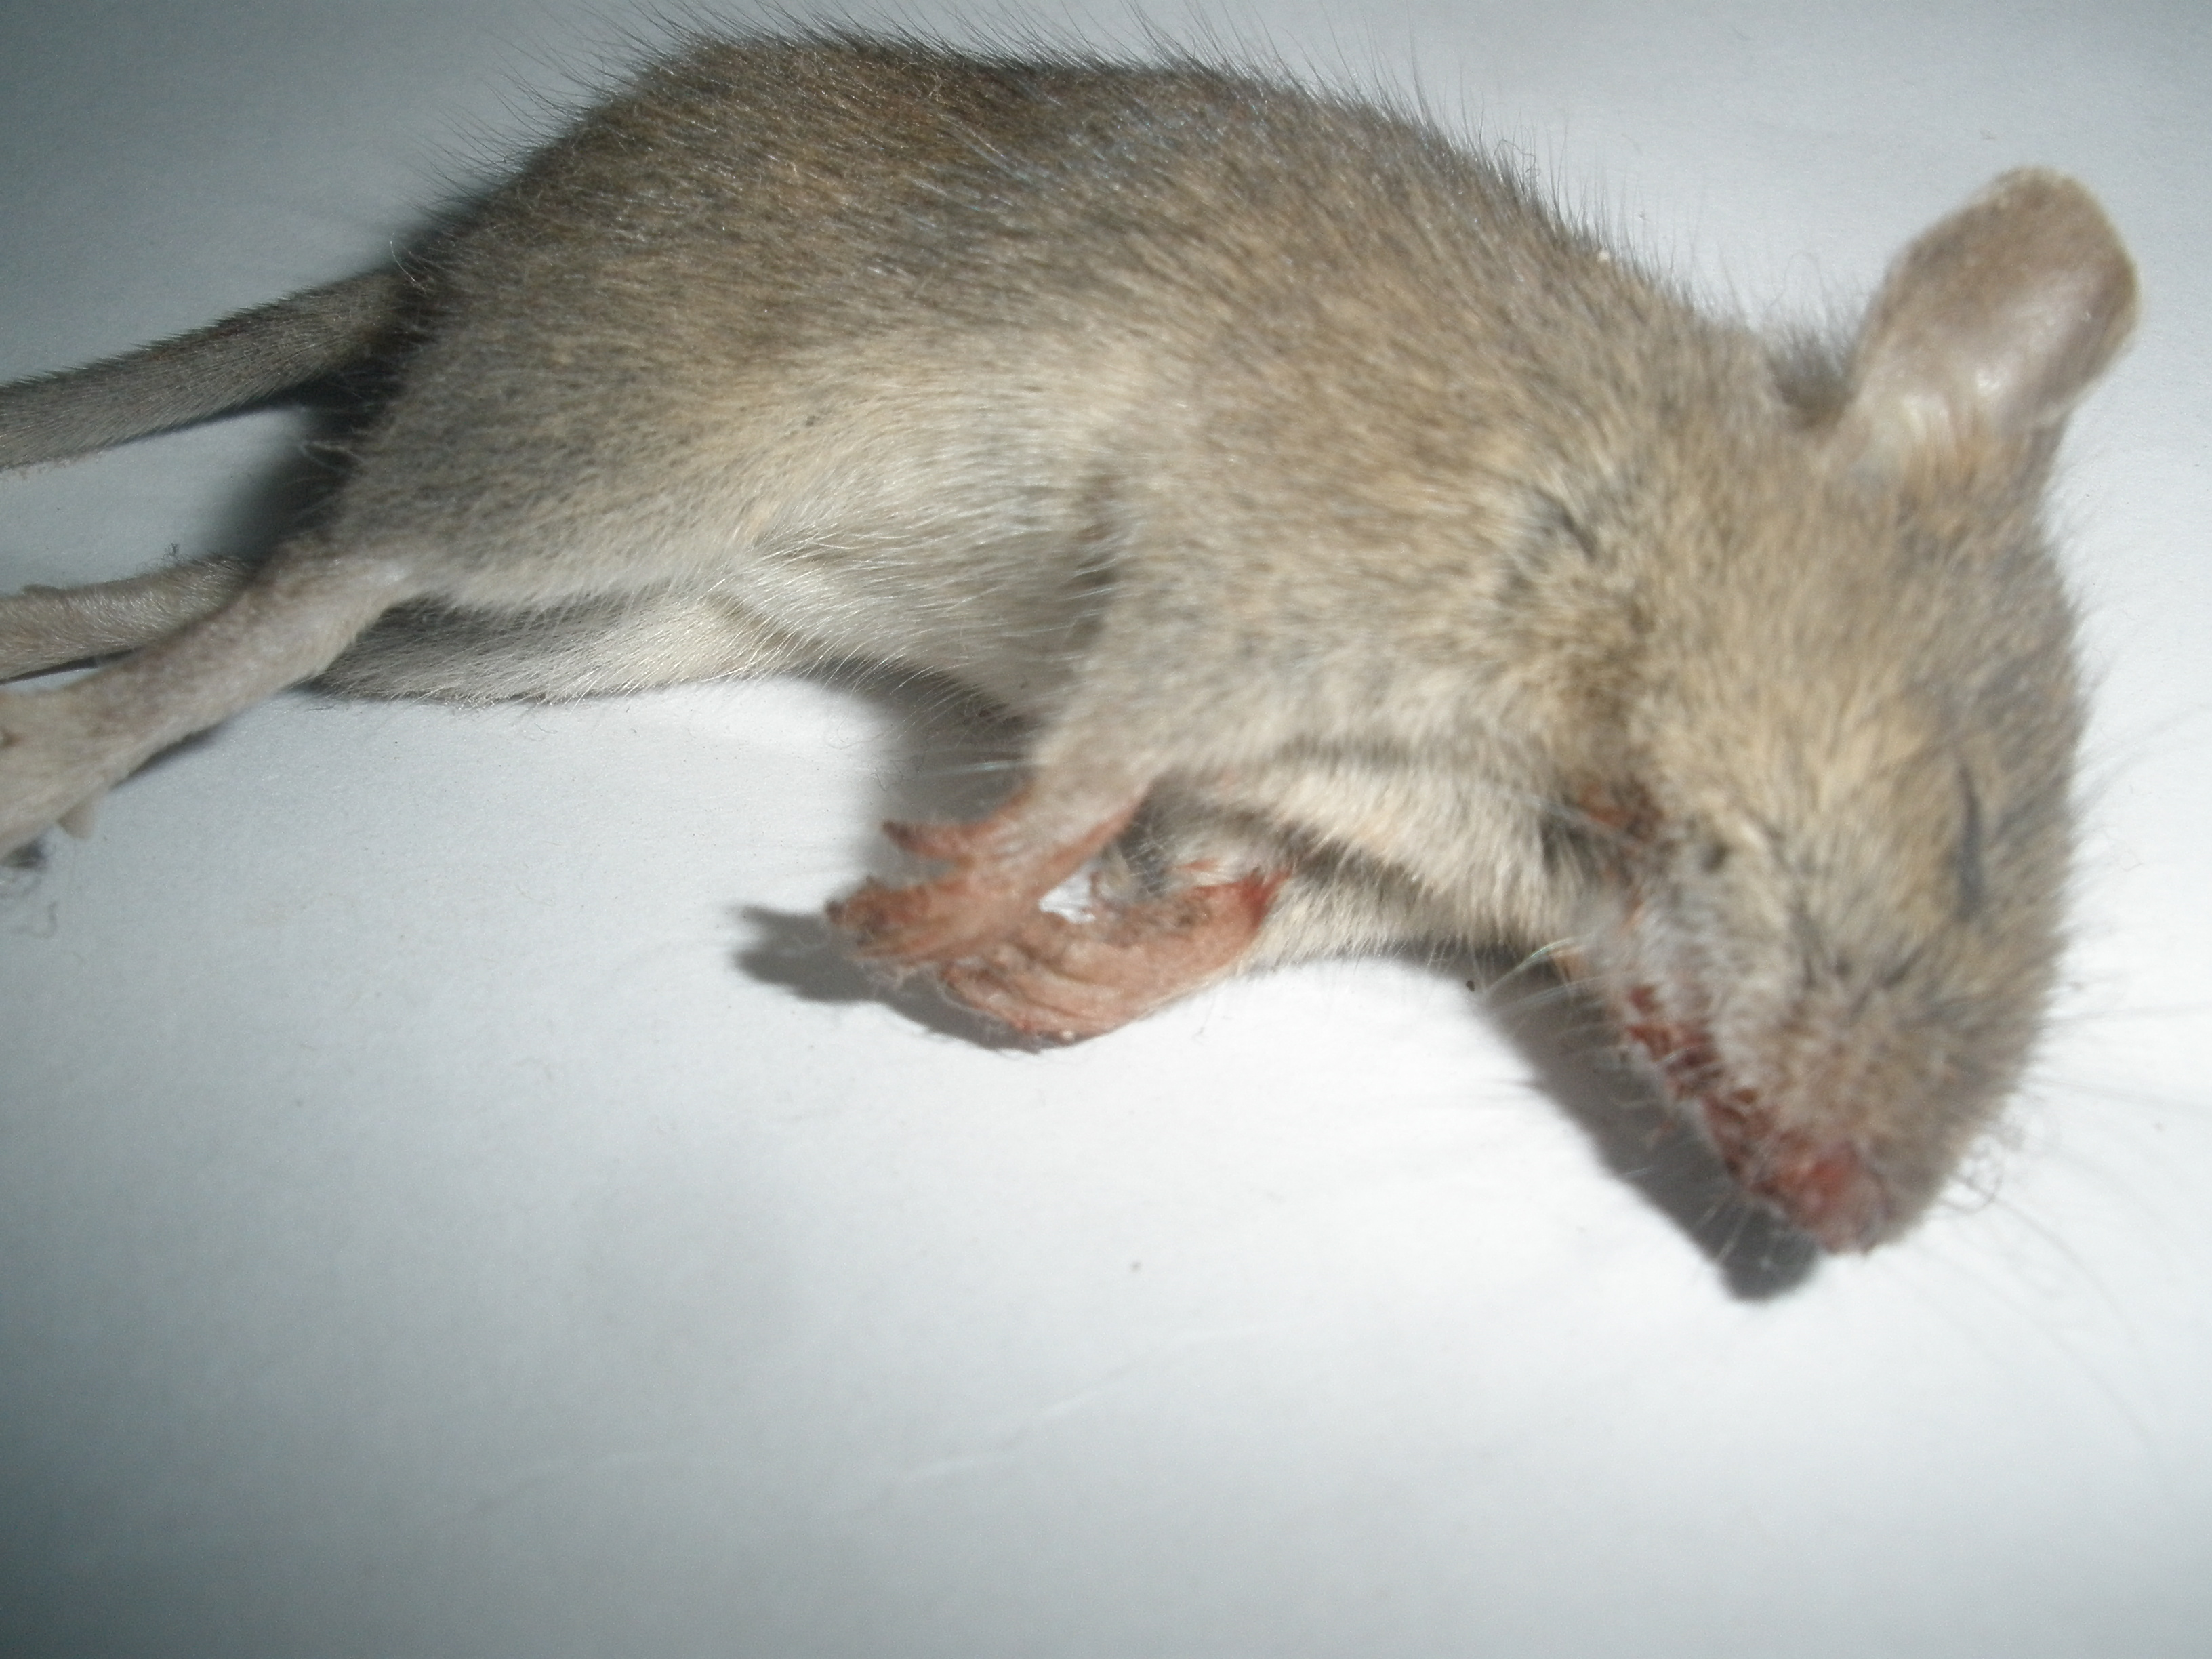 photo of a dead rodent